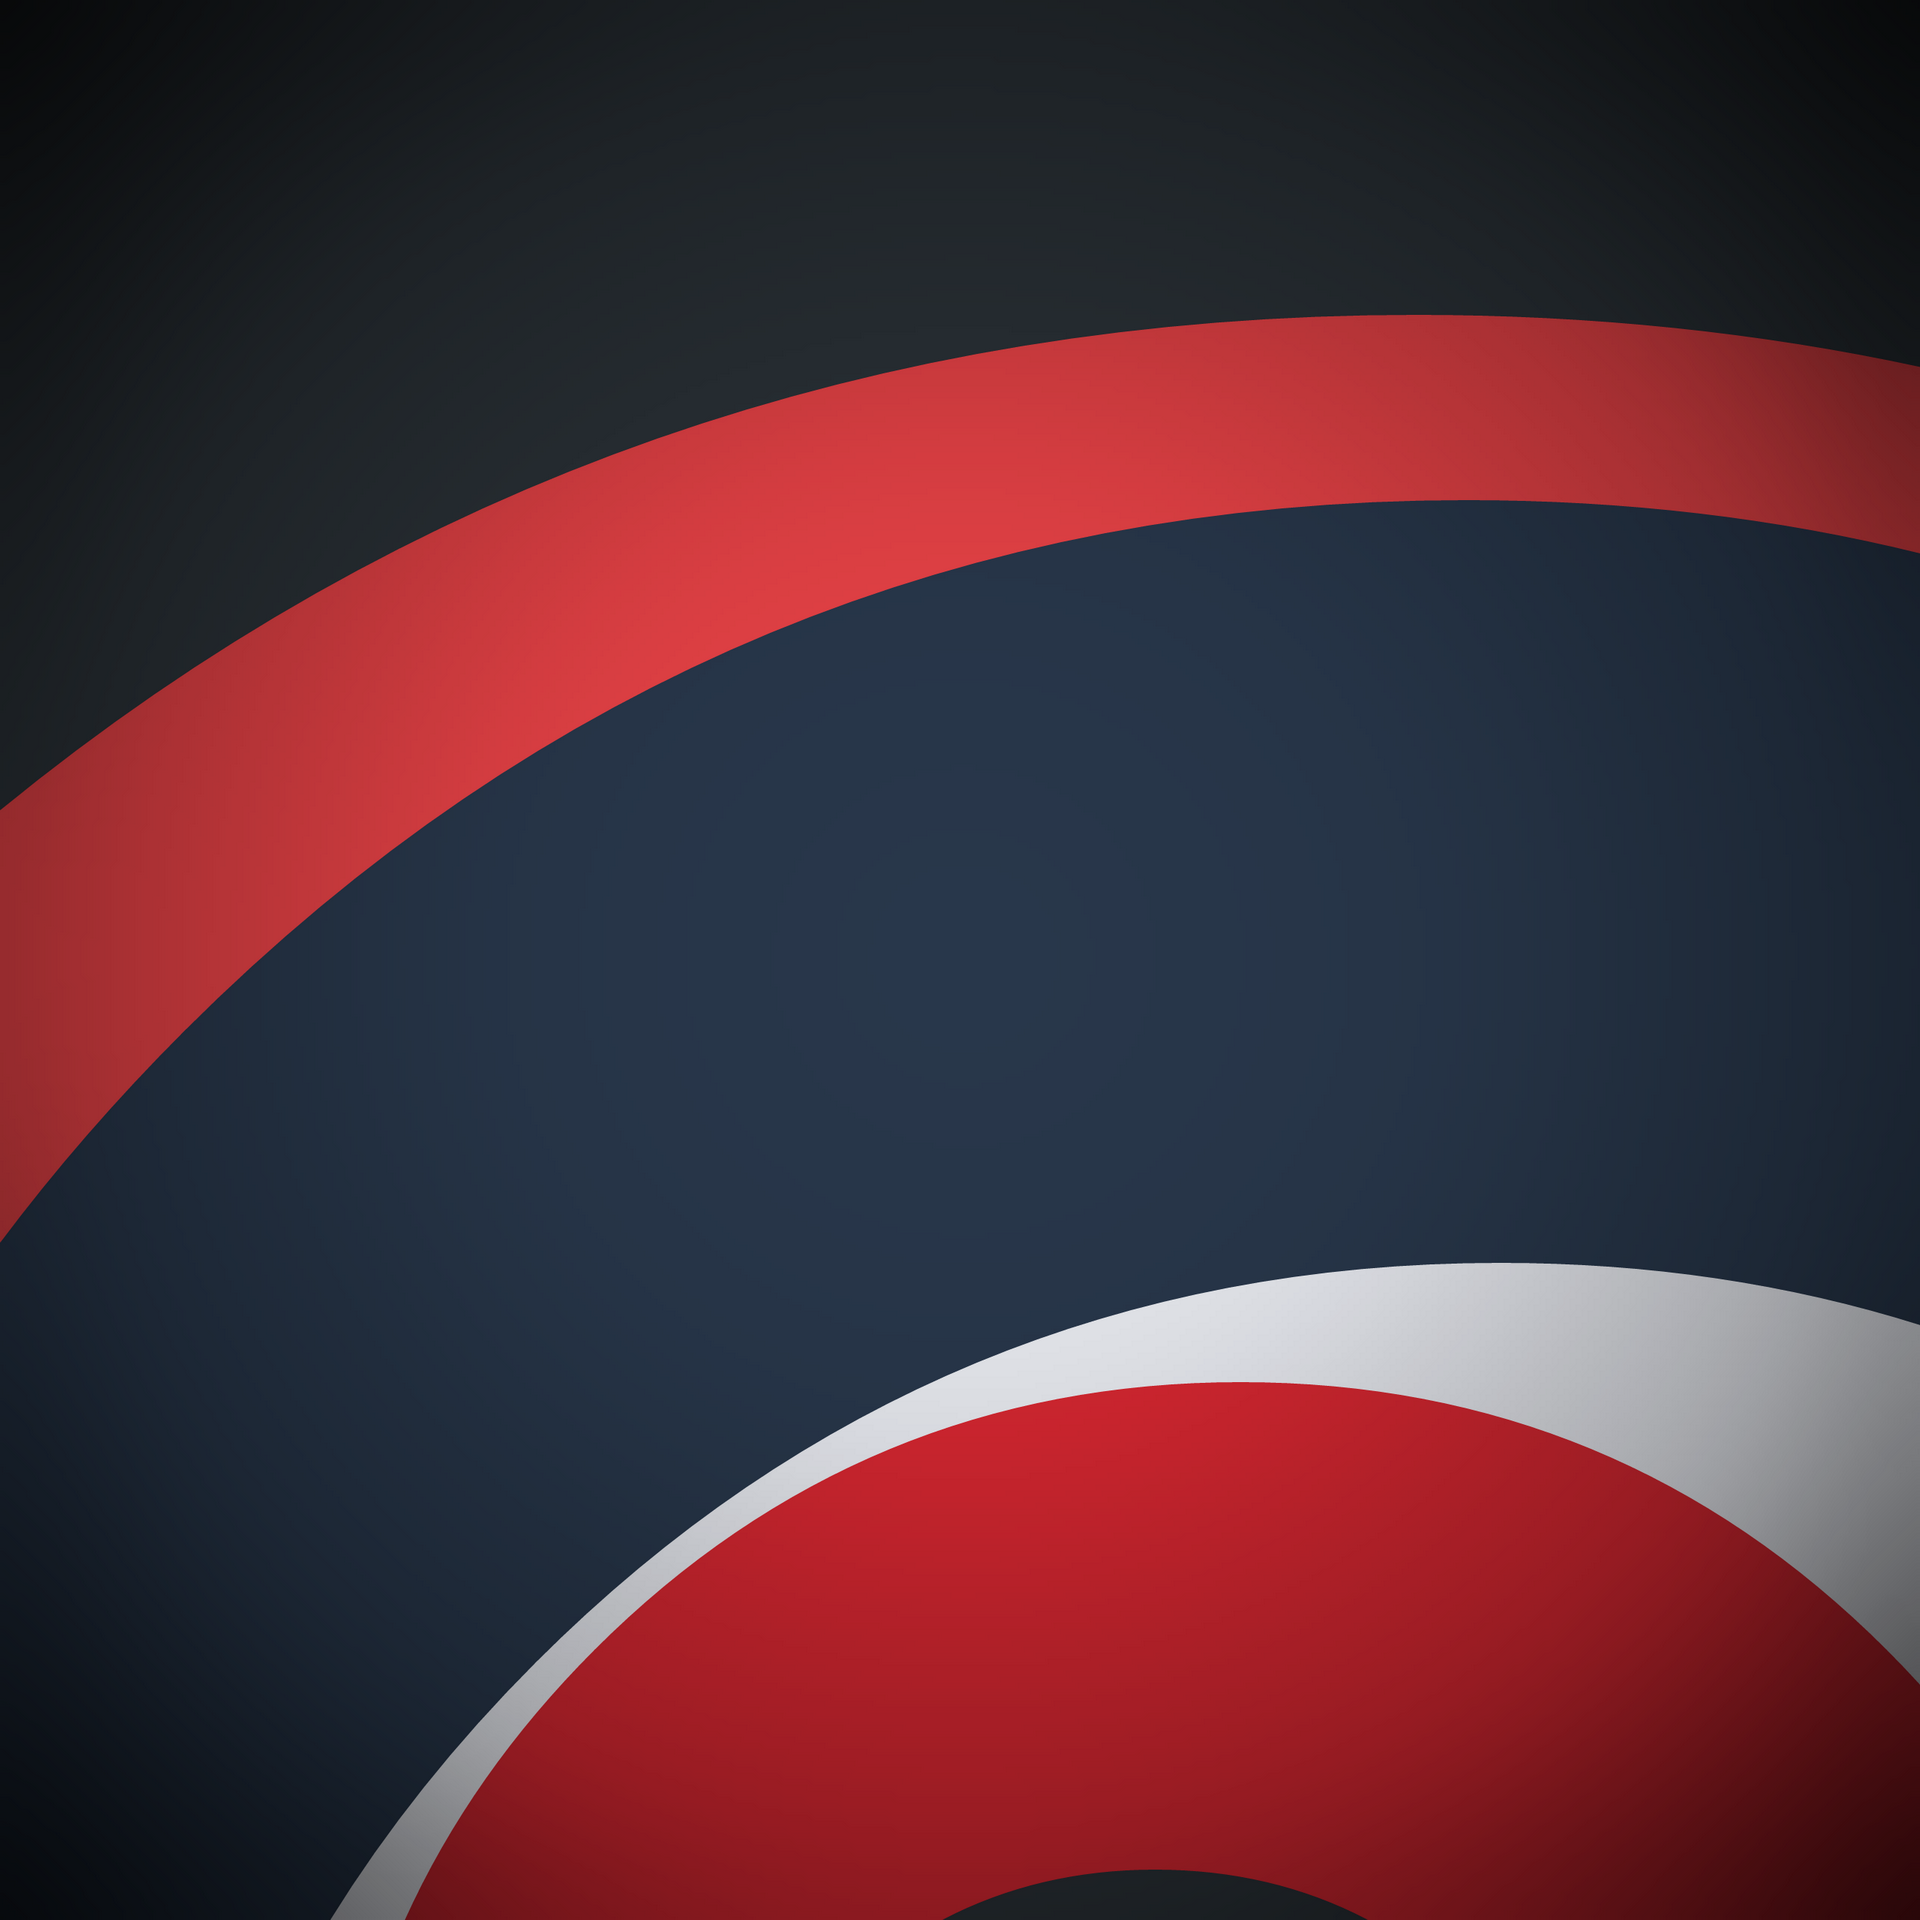 Modern material design full hd wallpaper no 040 1920x1920 for Sfondi material design